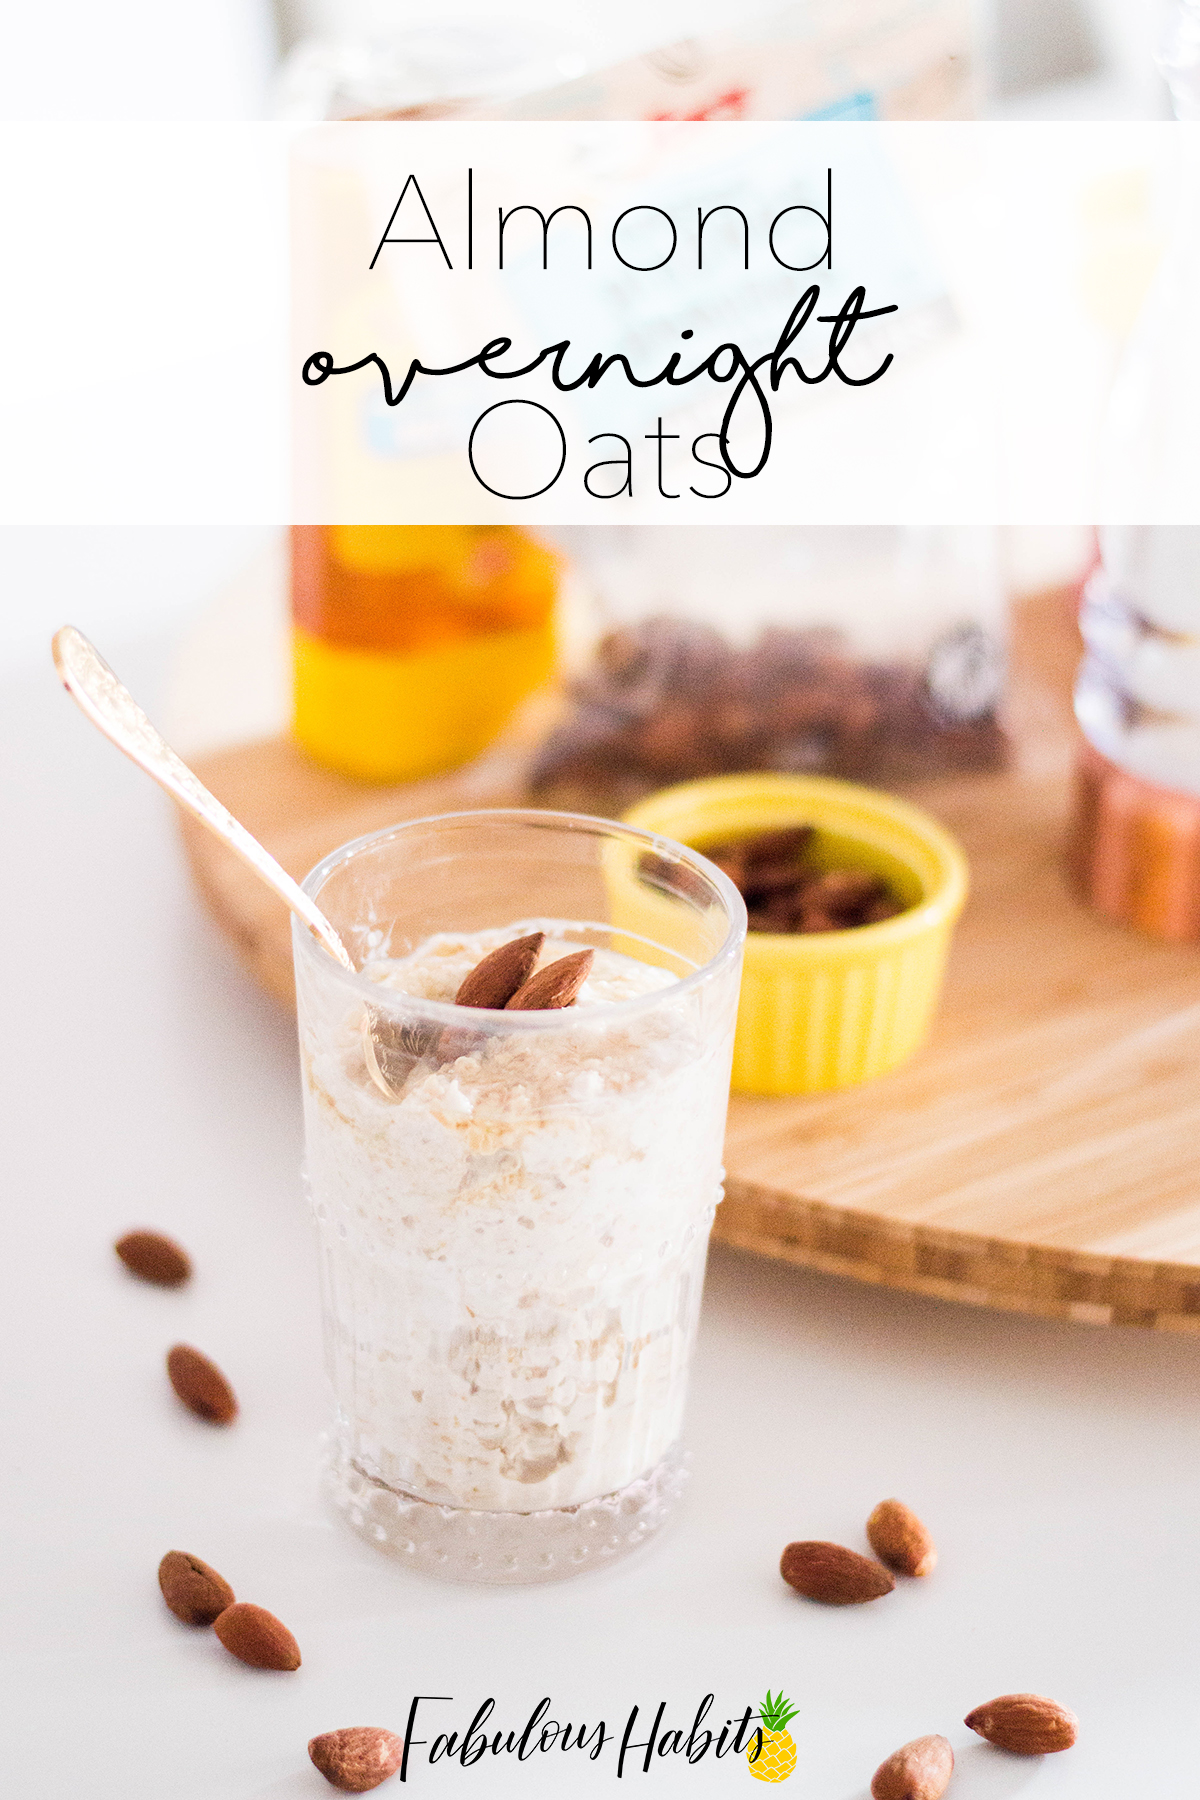 A simple breakfast to kick off your day. We turn to Almond Overnight Oats as a healthy and tasty solution for busy mornings.